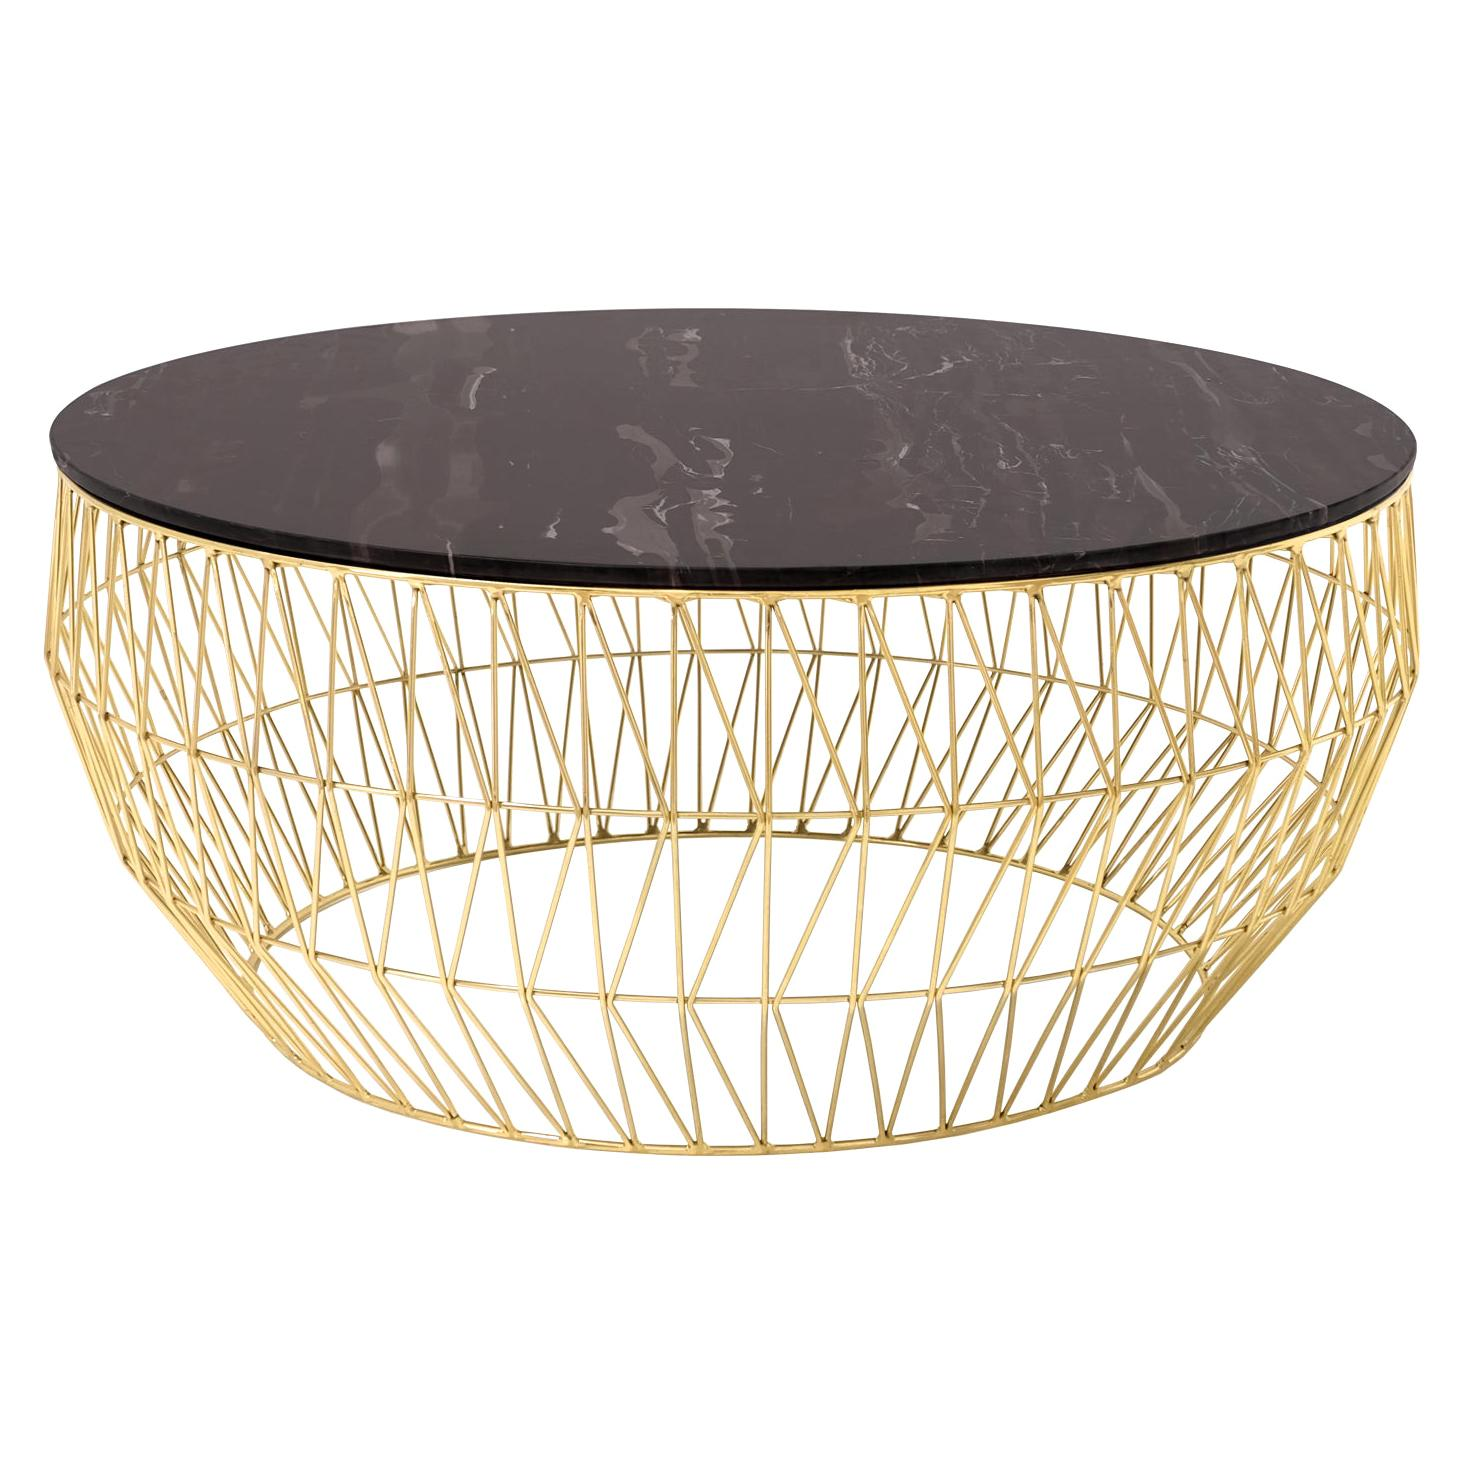 Minimalist Coffee Table, Wire Center Table in Gold with Black Marble